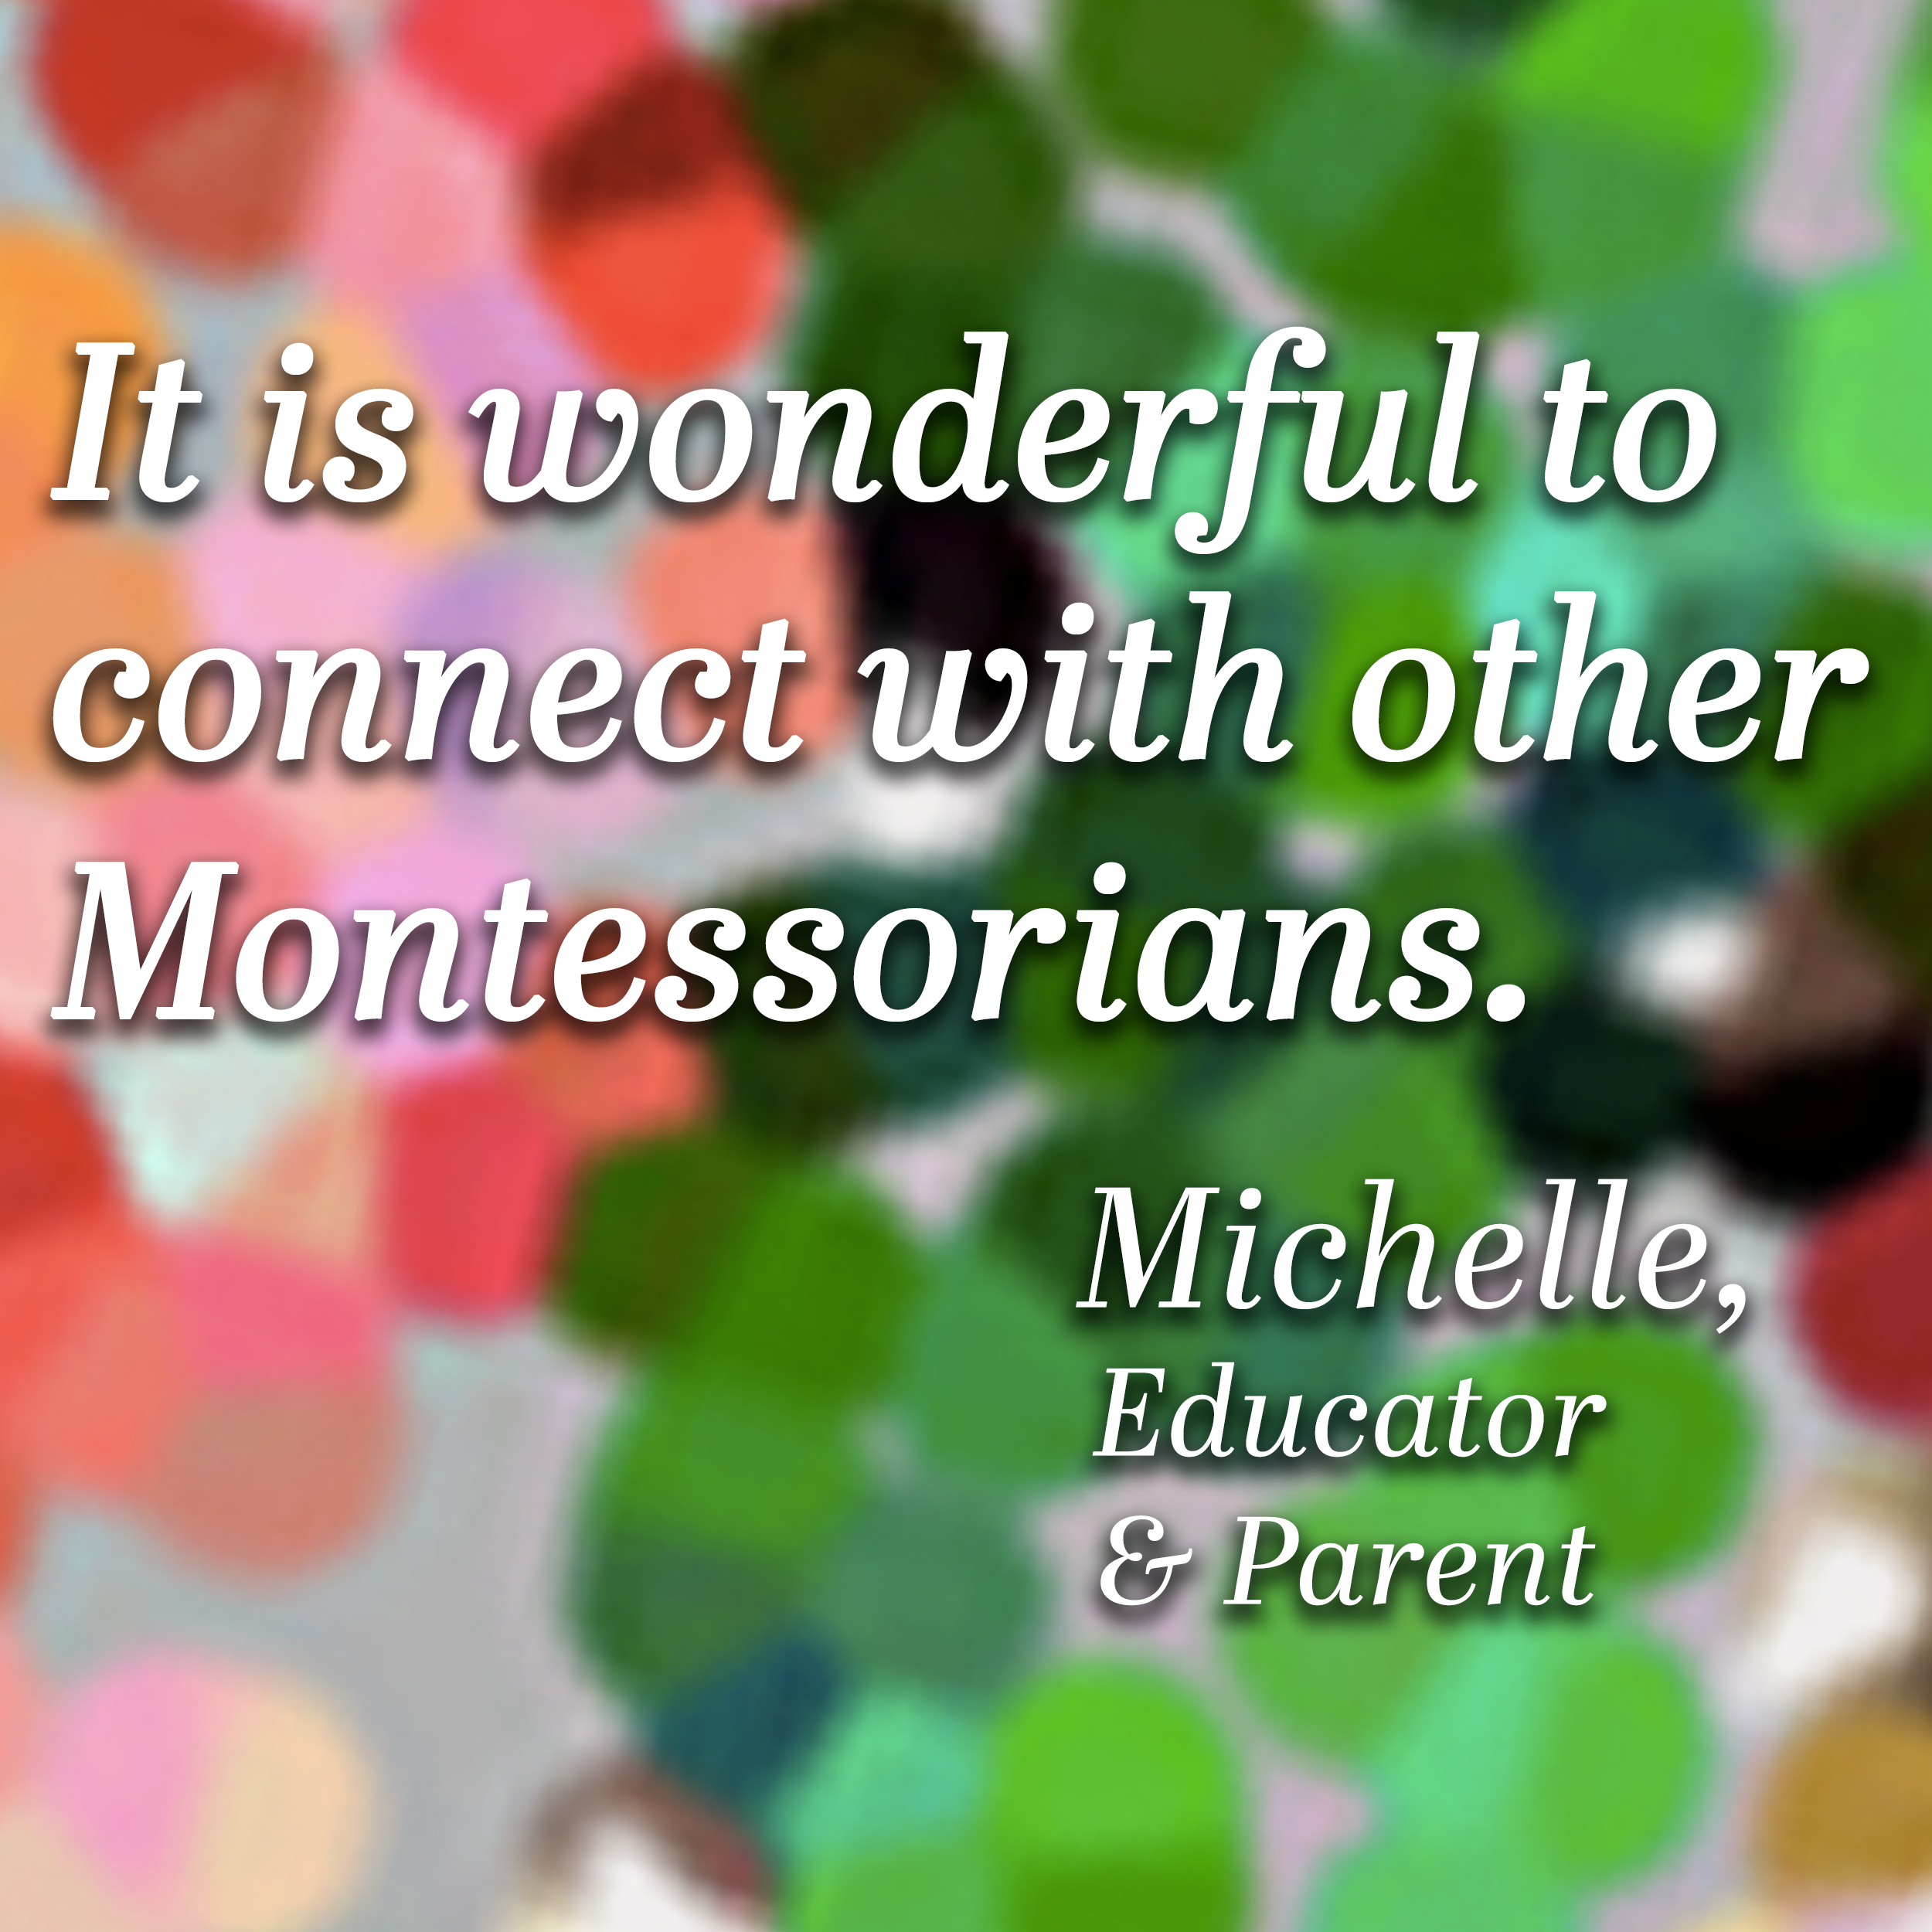 It is wonderful to connect with other Montessorians